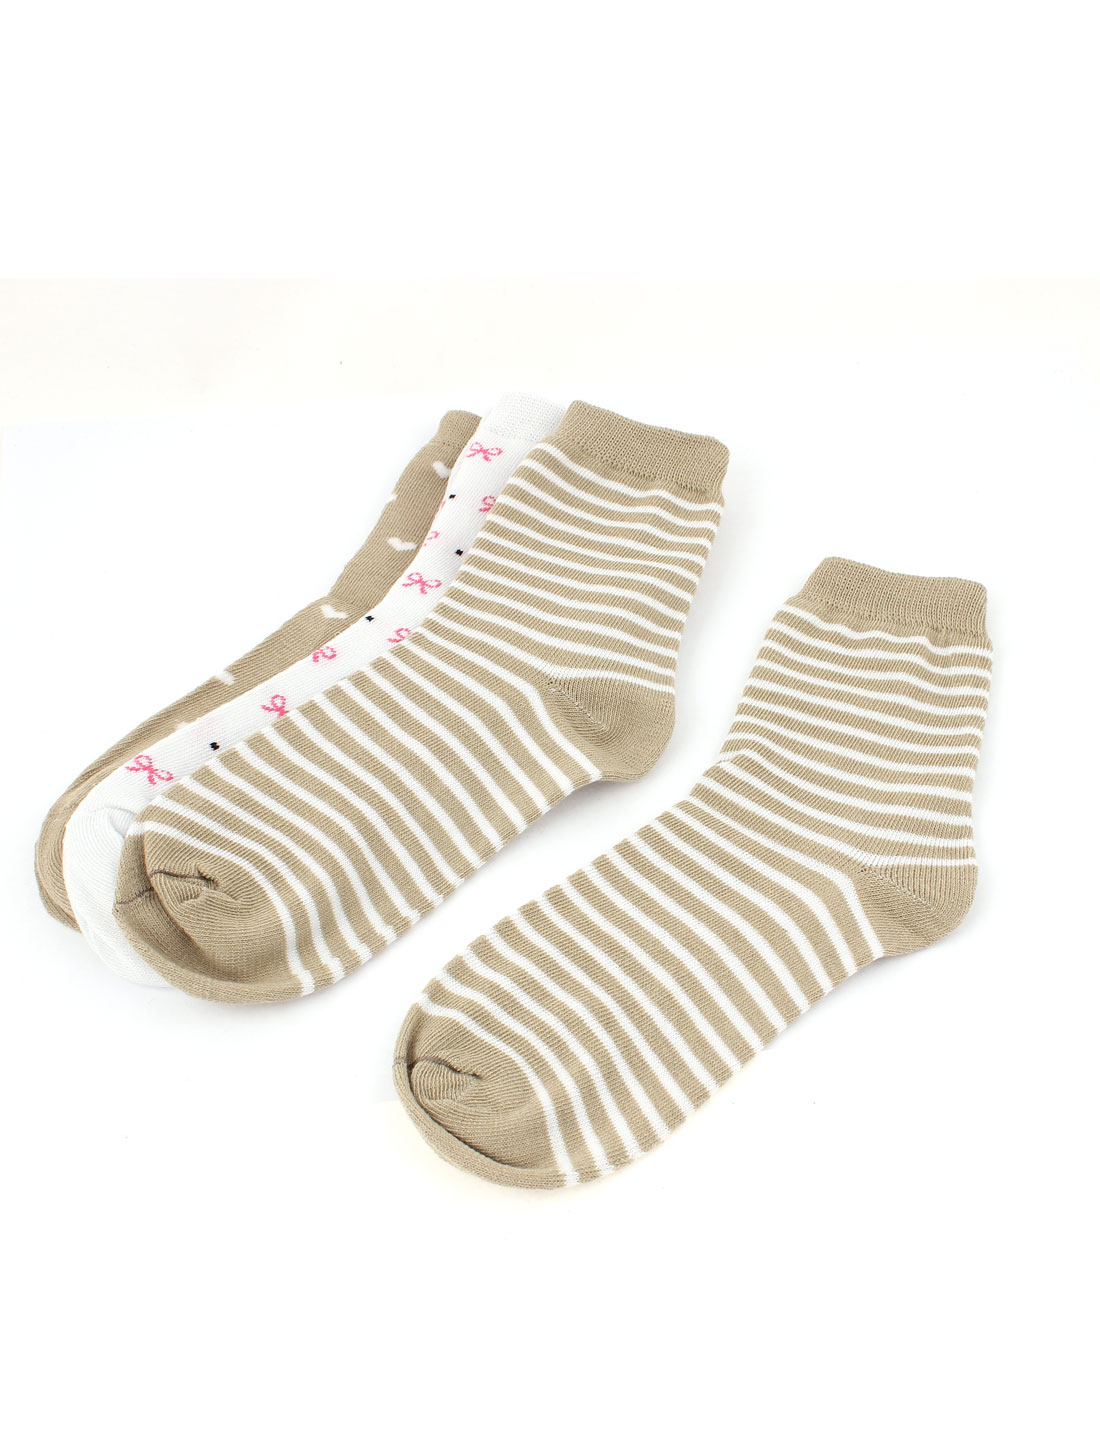 3Pairs Khaki White Cotton Blends Elastic Casual Ankle High Heels Hosiery Socks for Lady